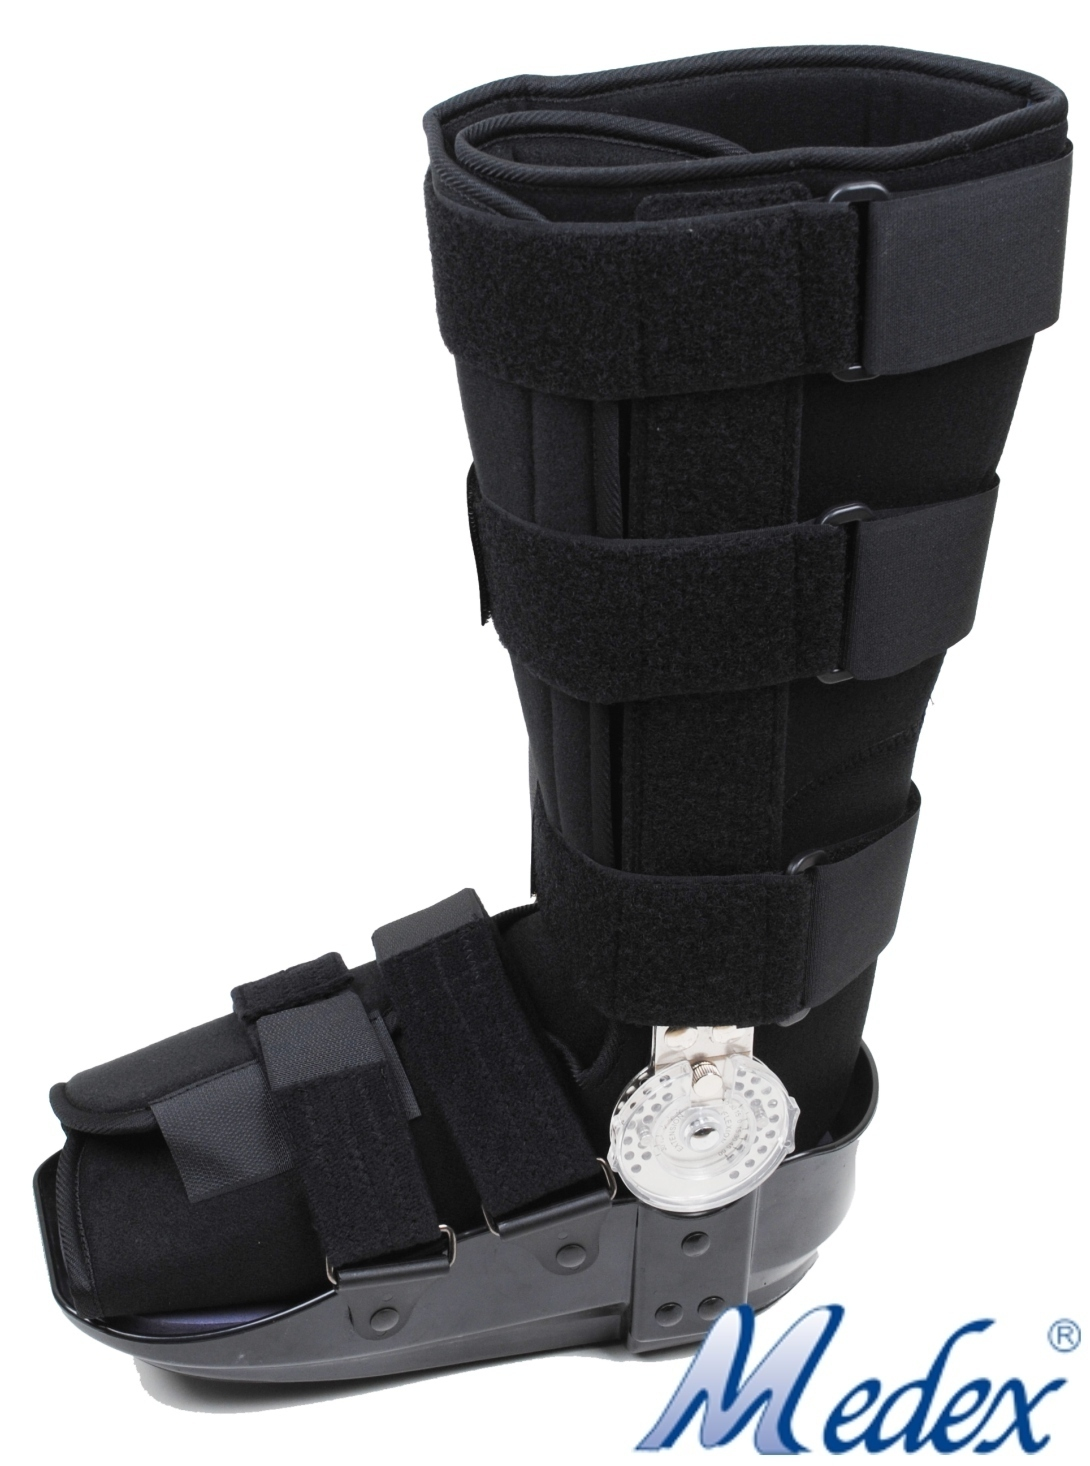 New products for 2013 Achilles tendon boots medex adjustable a15a foot ankle support fitted